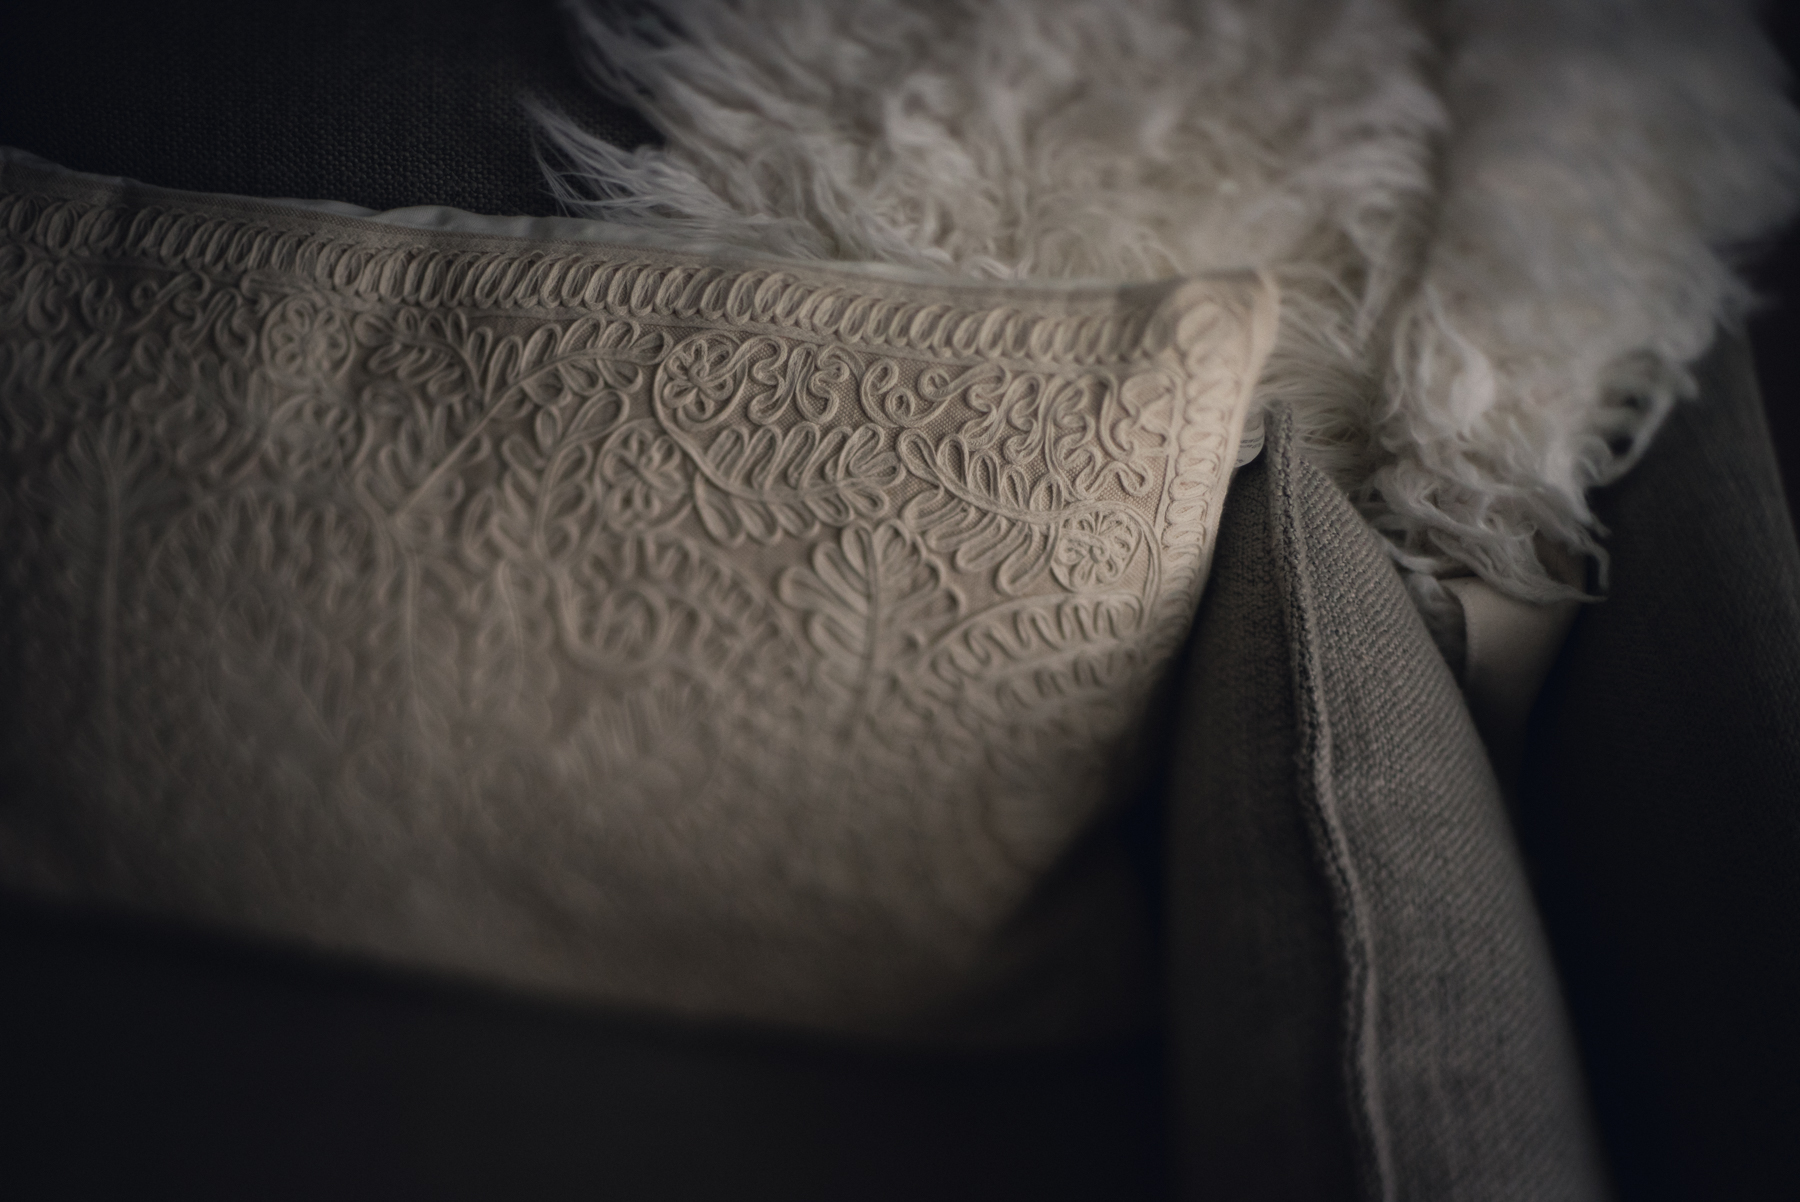 pillows on couch in natural light photo freelensed by megan cieloha